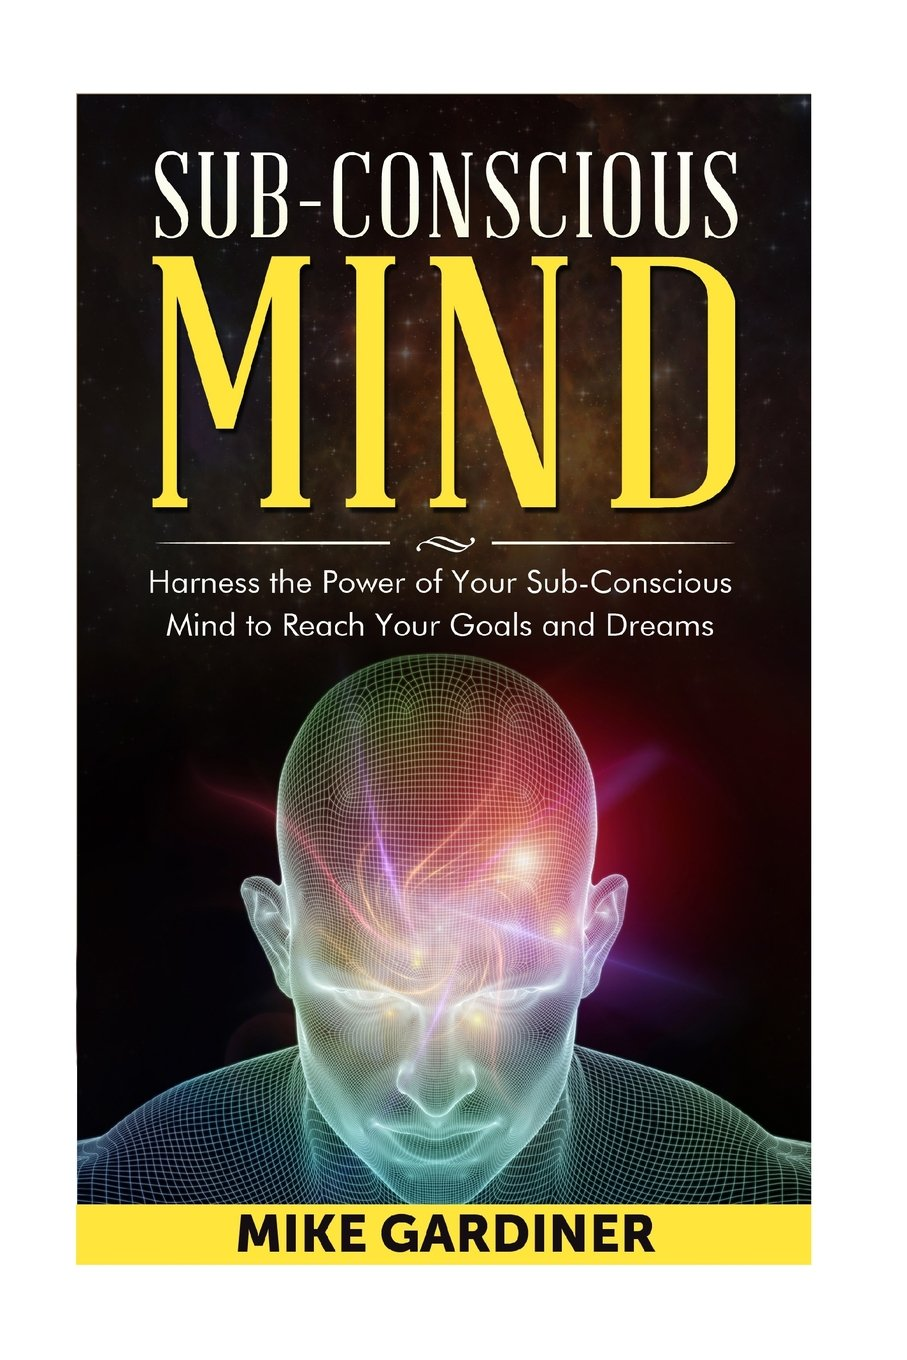 Subconscious Mind: Harness the Power of Your Sub-conscious Mind to Reach Your Goals and Dreams PDF